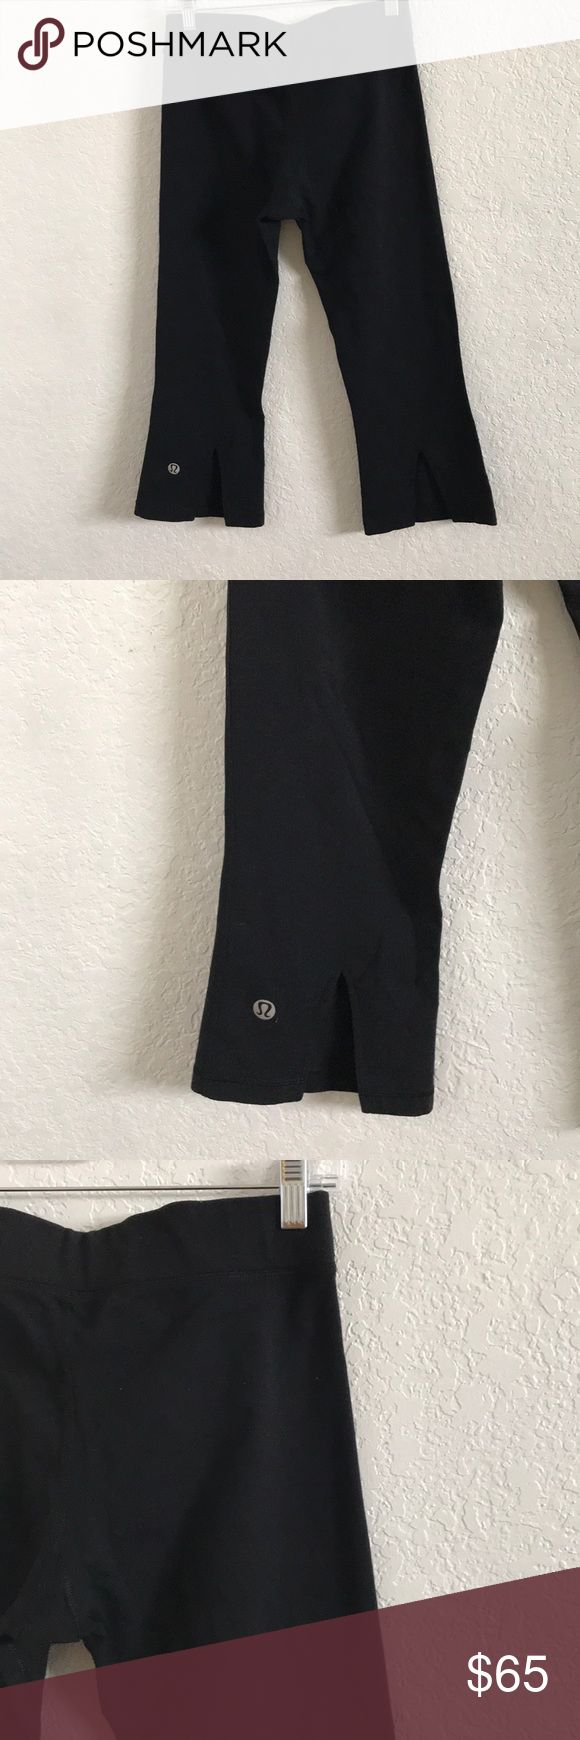 LULULEMON ATHLETICA Cropped Capri Pants Black 8 LULULEMON ATHLETICA Womens Cropped Capri Pants  Black 8 - minor wear please pics lululemon athletica Pants Track Pants & Joggers